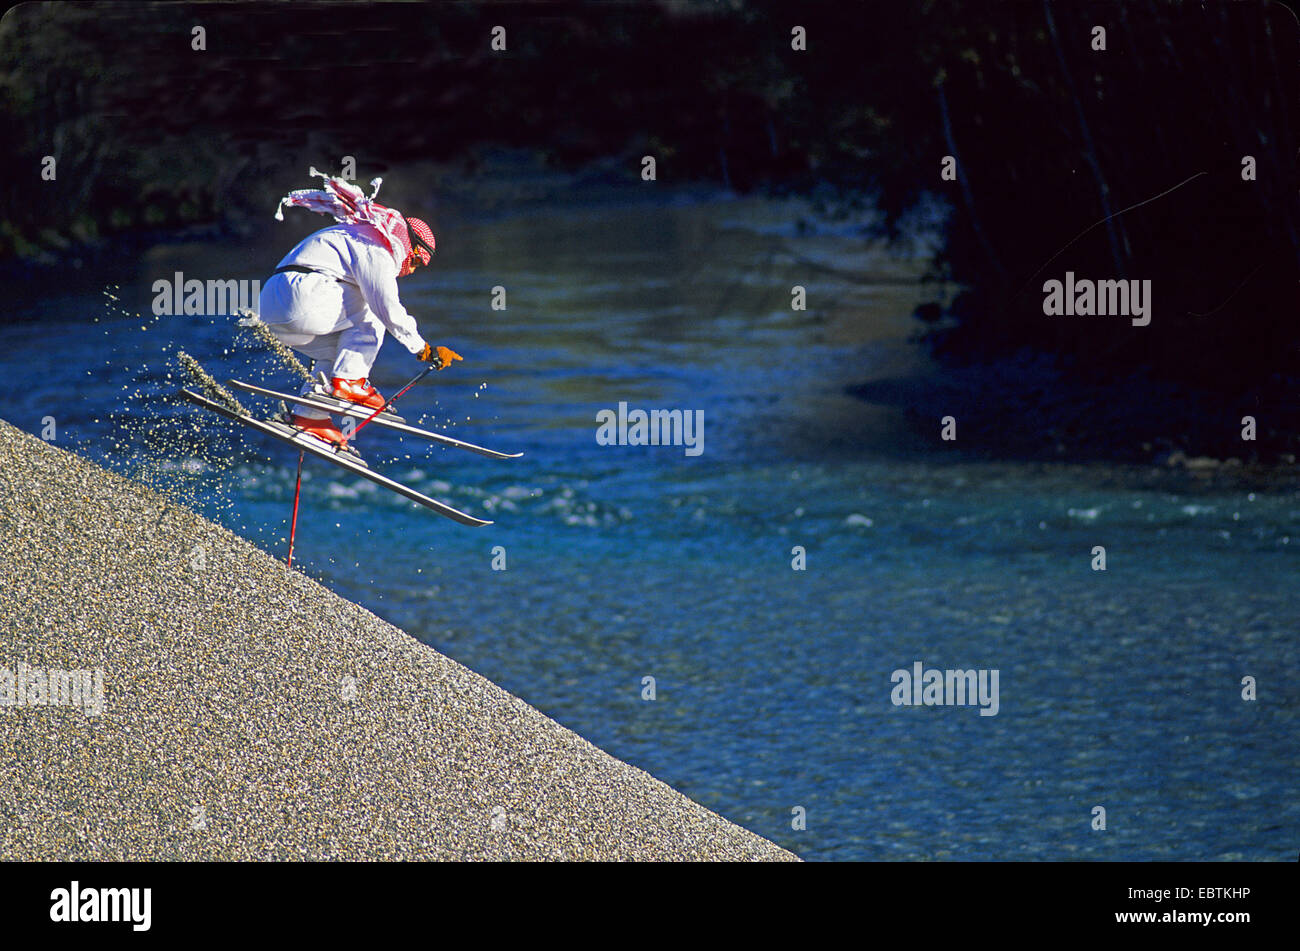 freeride skier disguised as sheik going downhill on gravel slope - Stock Image